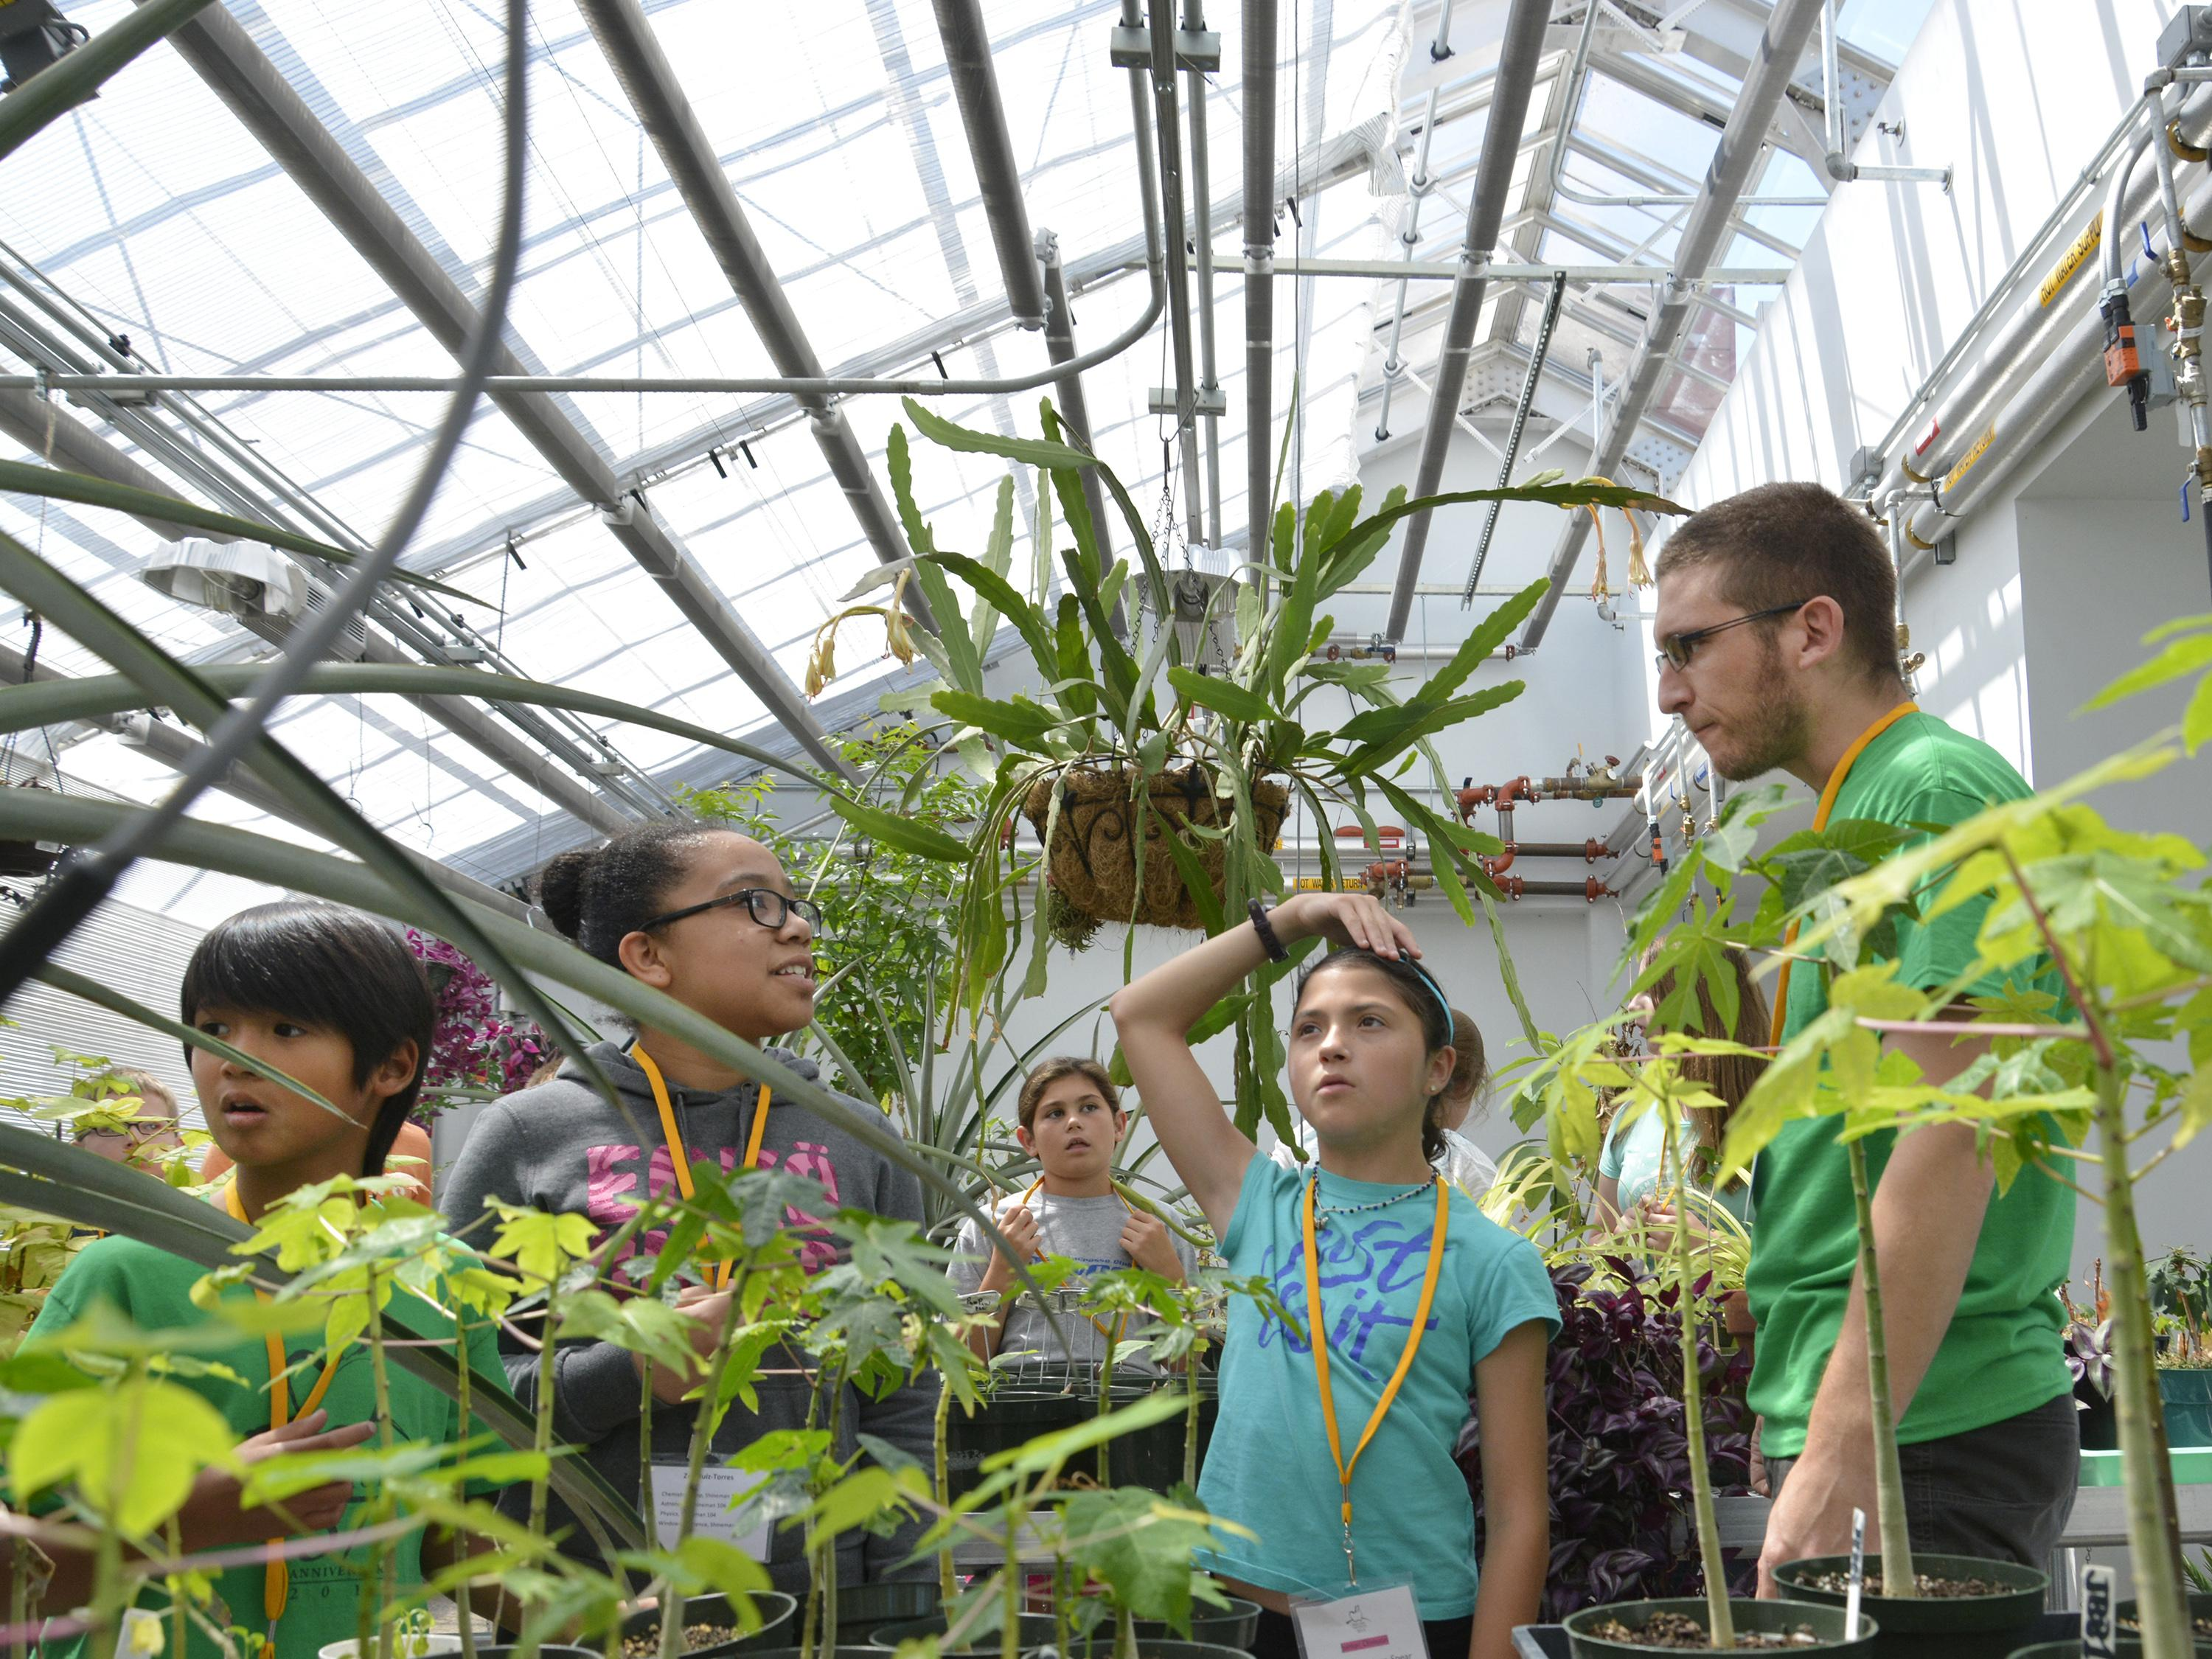 Children at the Sheldon Institute explore the greenhouse atop the Richard S. Shineman Center.